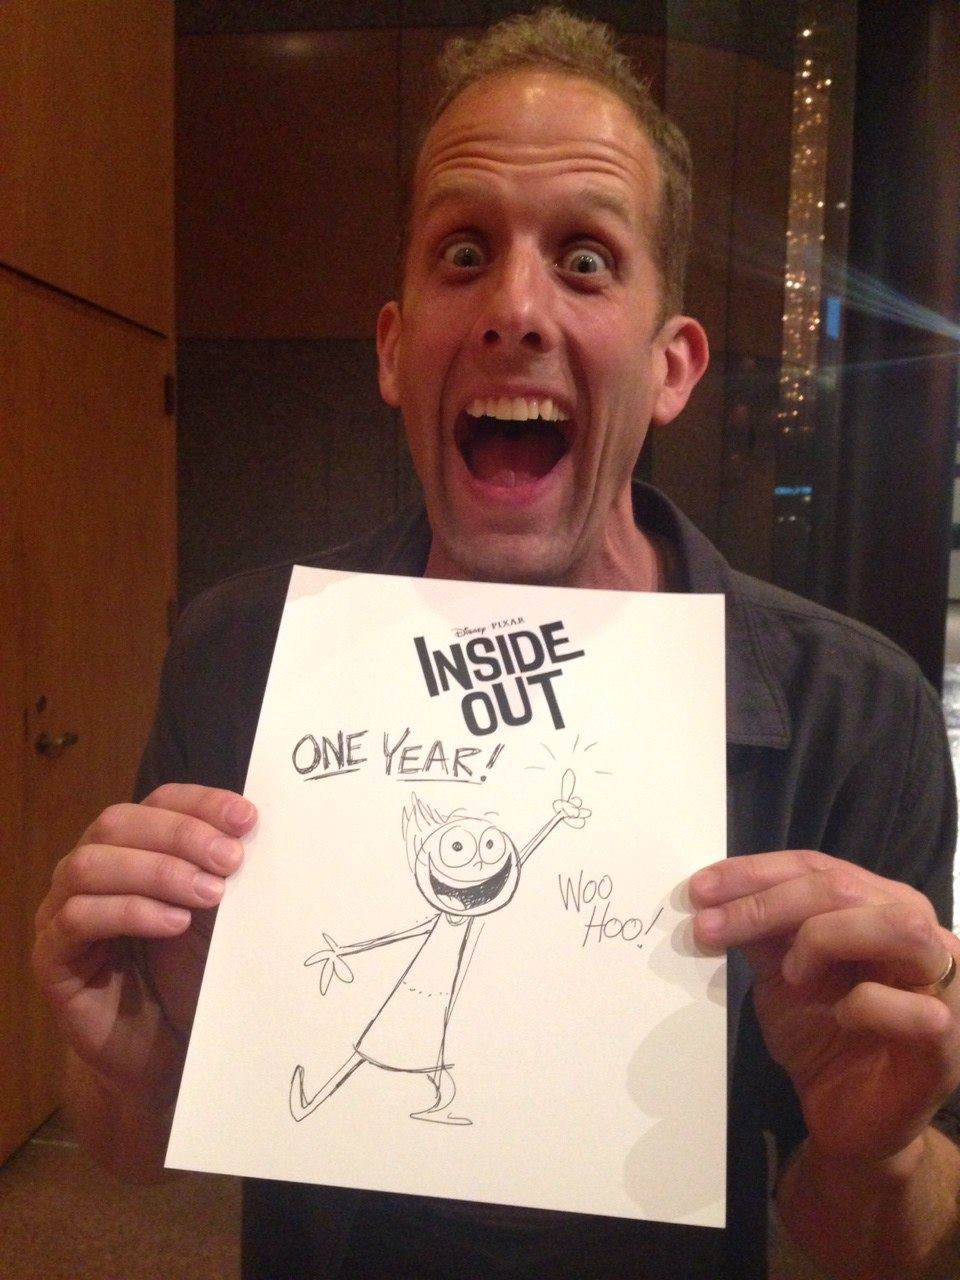 Inside-Out-Pete-Docter-previews-concept-art